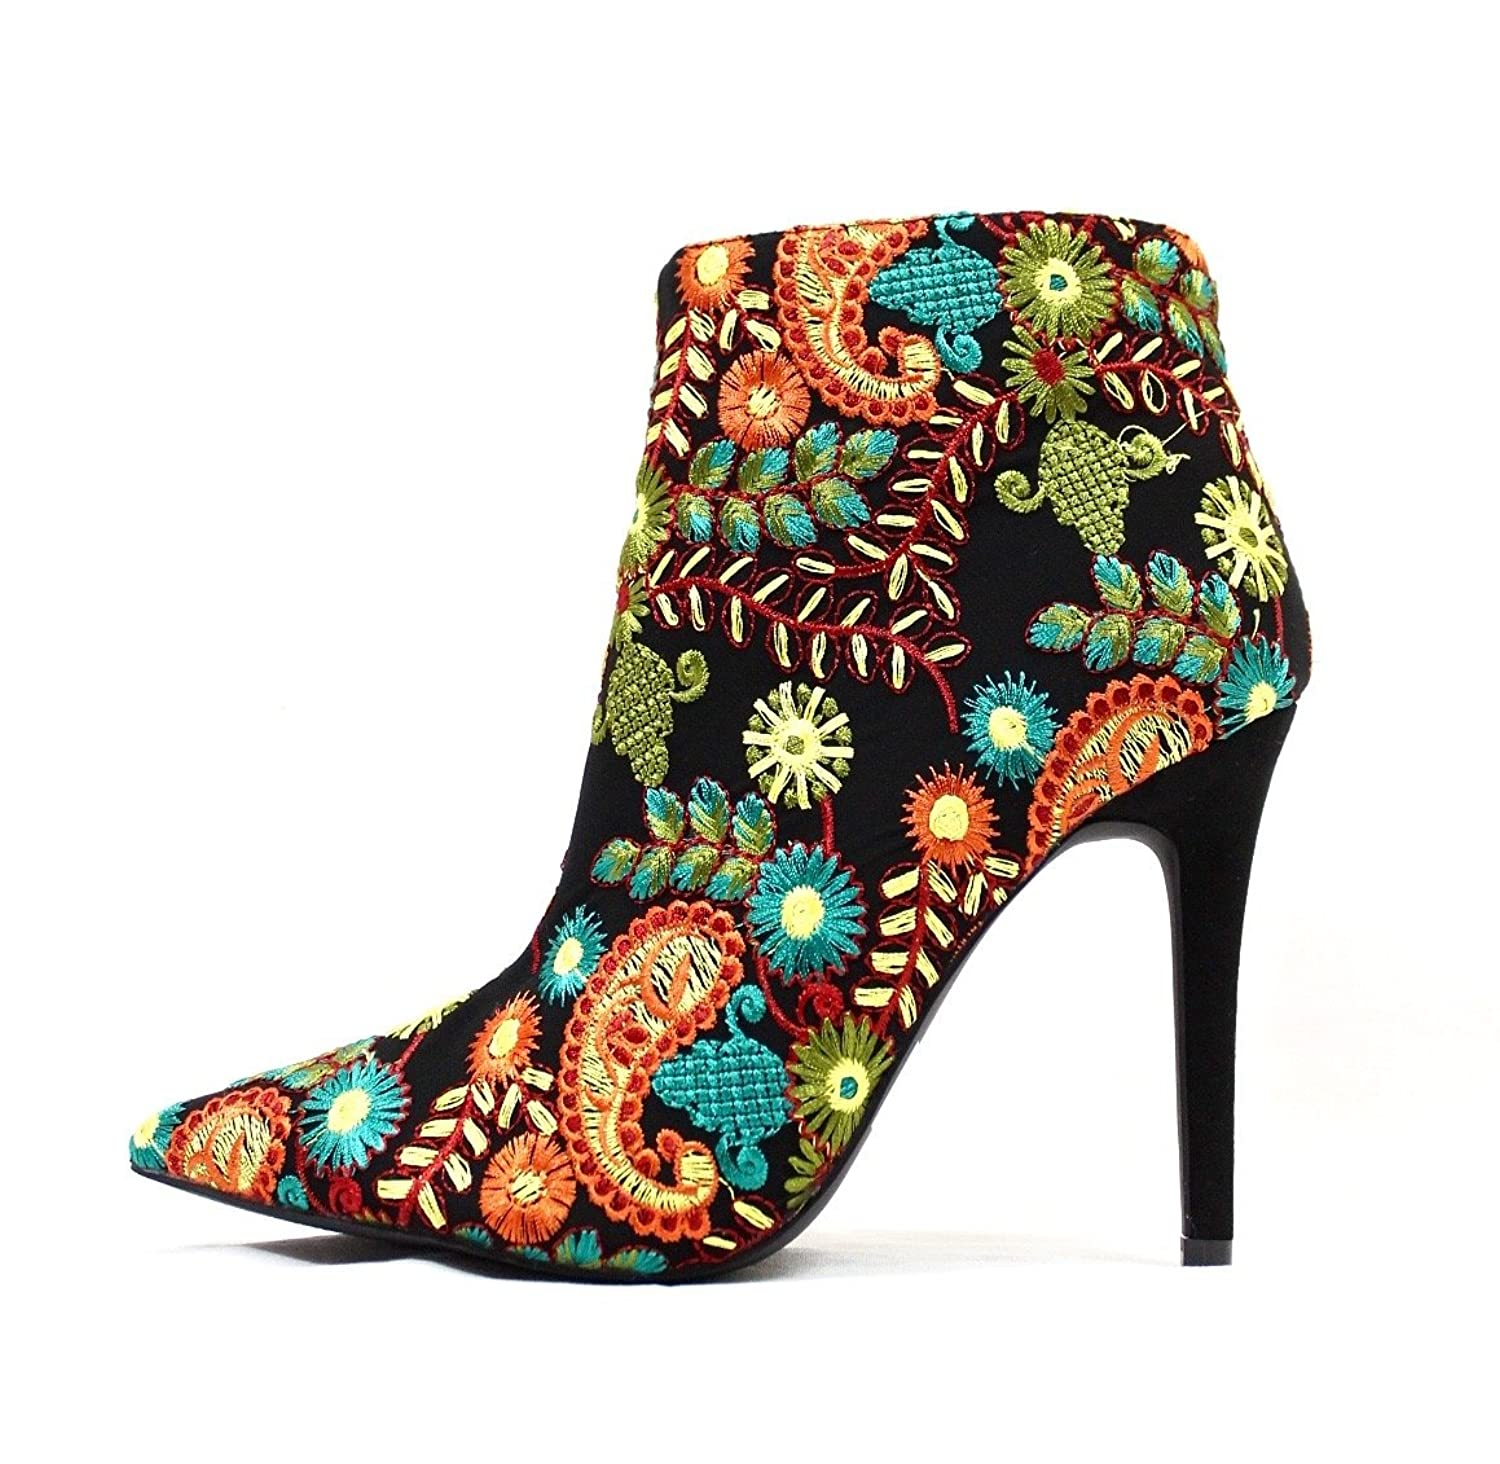 Royal lion mens classroom periodic table of elements rubber flip milia 61 embroidered pointy toe high heel dress stiletto ankle boots bootie urtaz Gallery